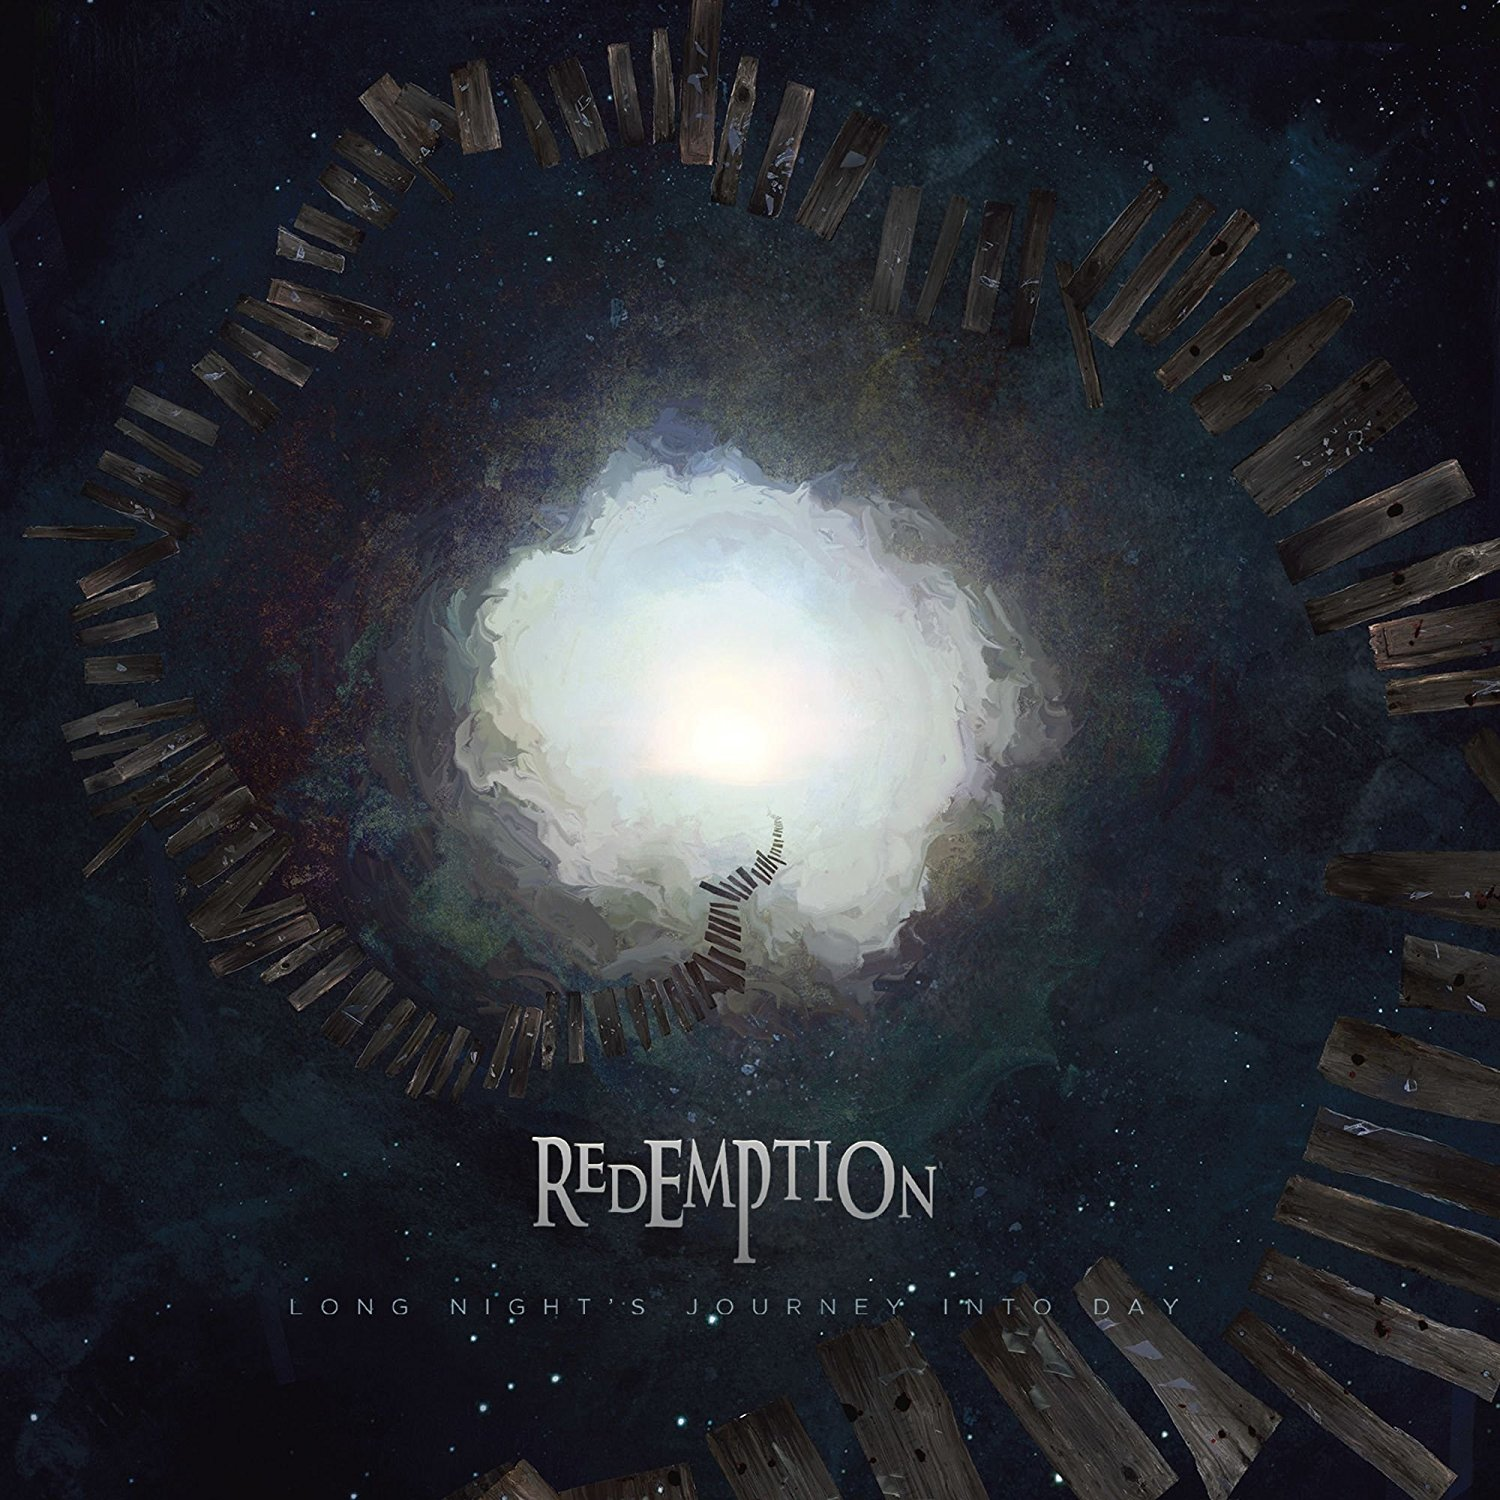 Redemption: Long Night's Journey into Day